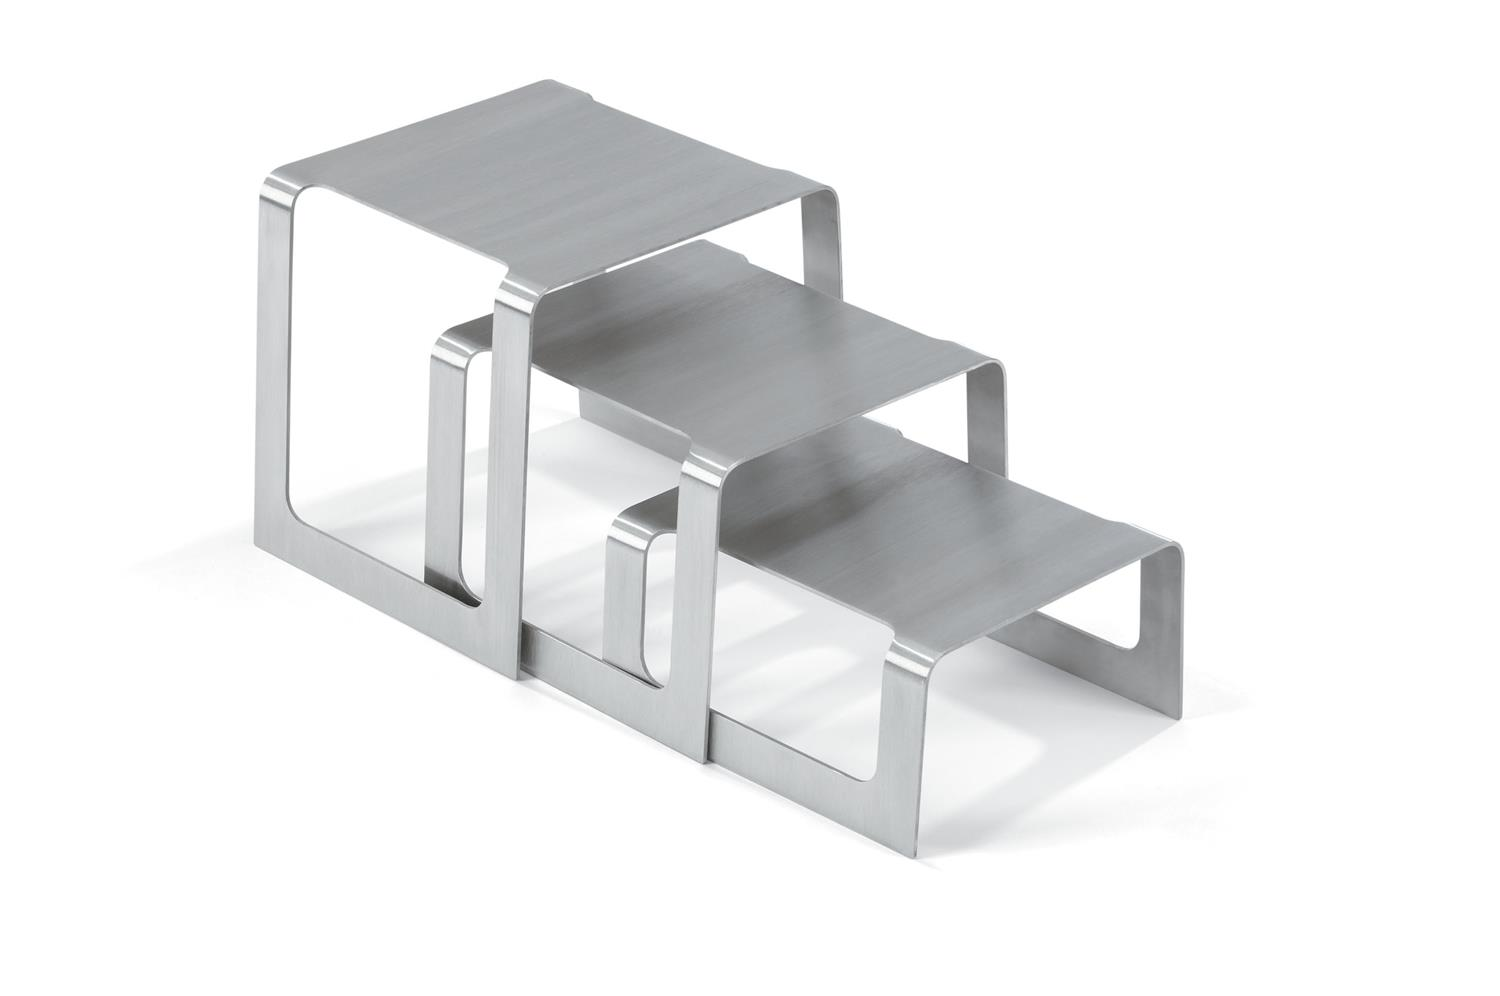 Vollrath 46009 Square Bent Buffet Riser Sets